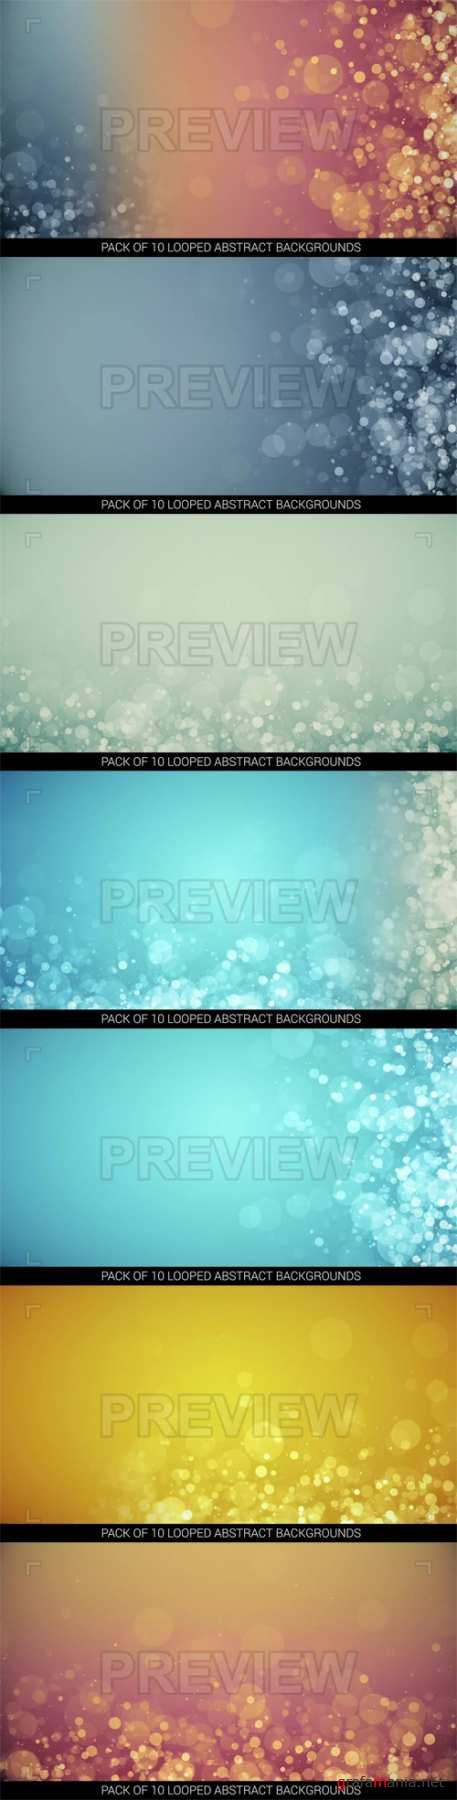 10 Looped Abstract Backgrounds